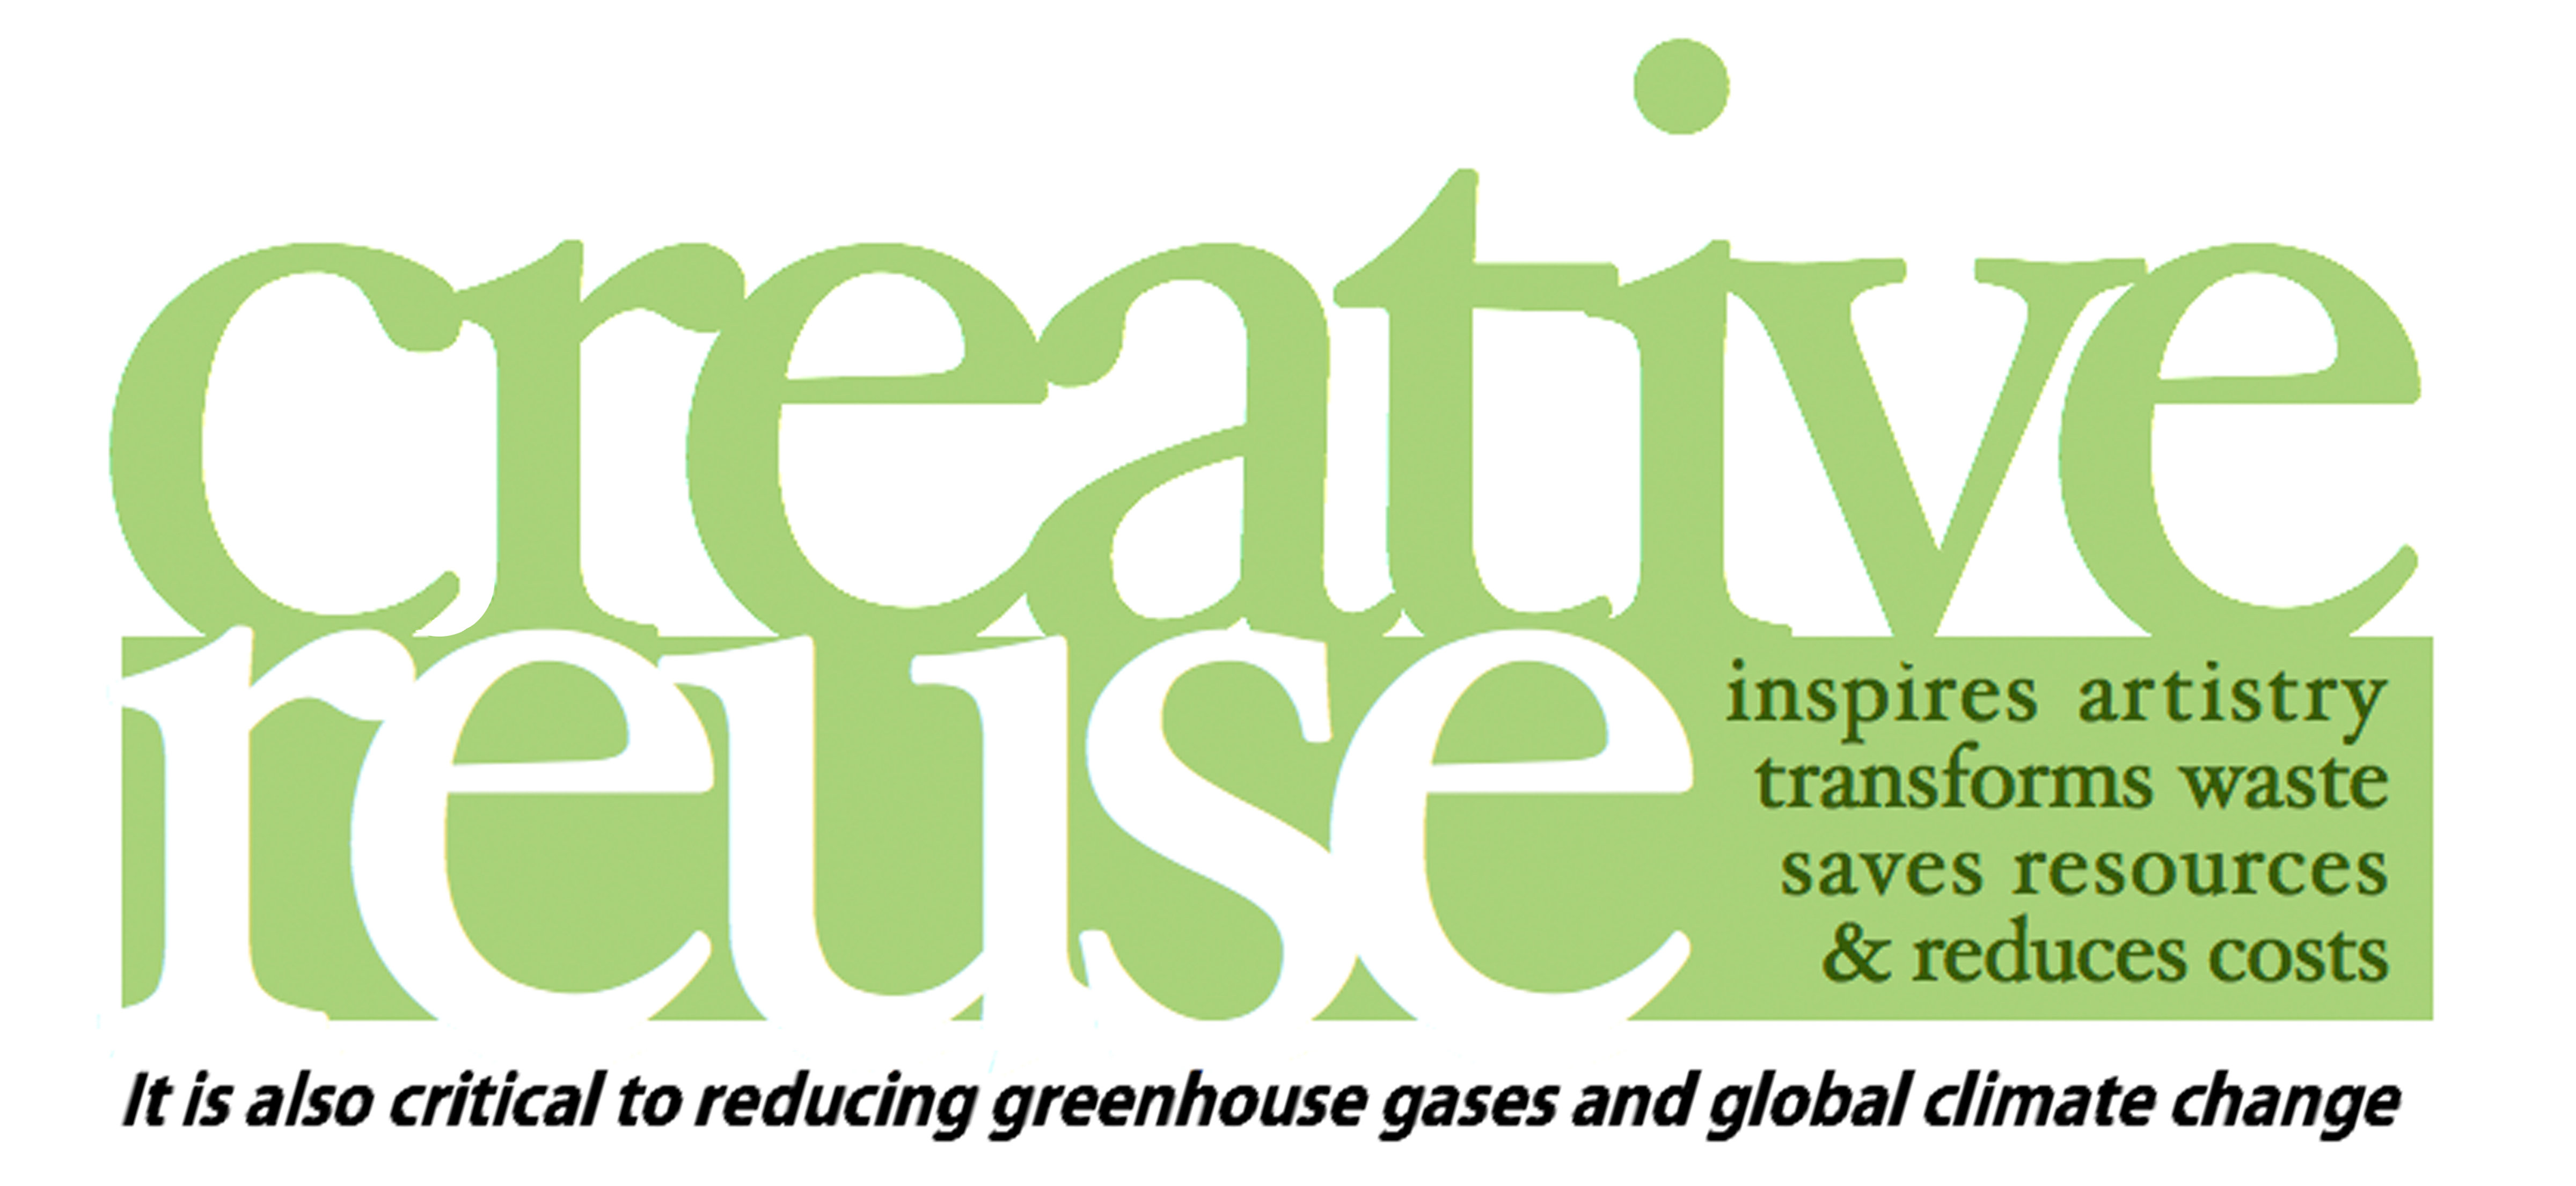 creative reuse inspires artistry, transforms waste, saves resources, & reduces costs. It is also cristical to reducing greenhouse gases and global climate change.